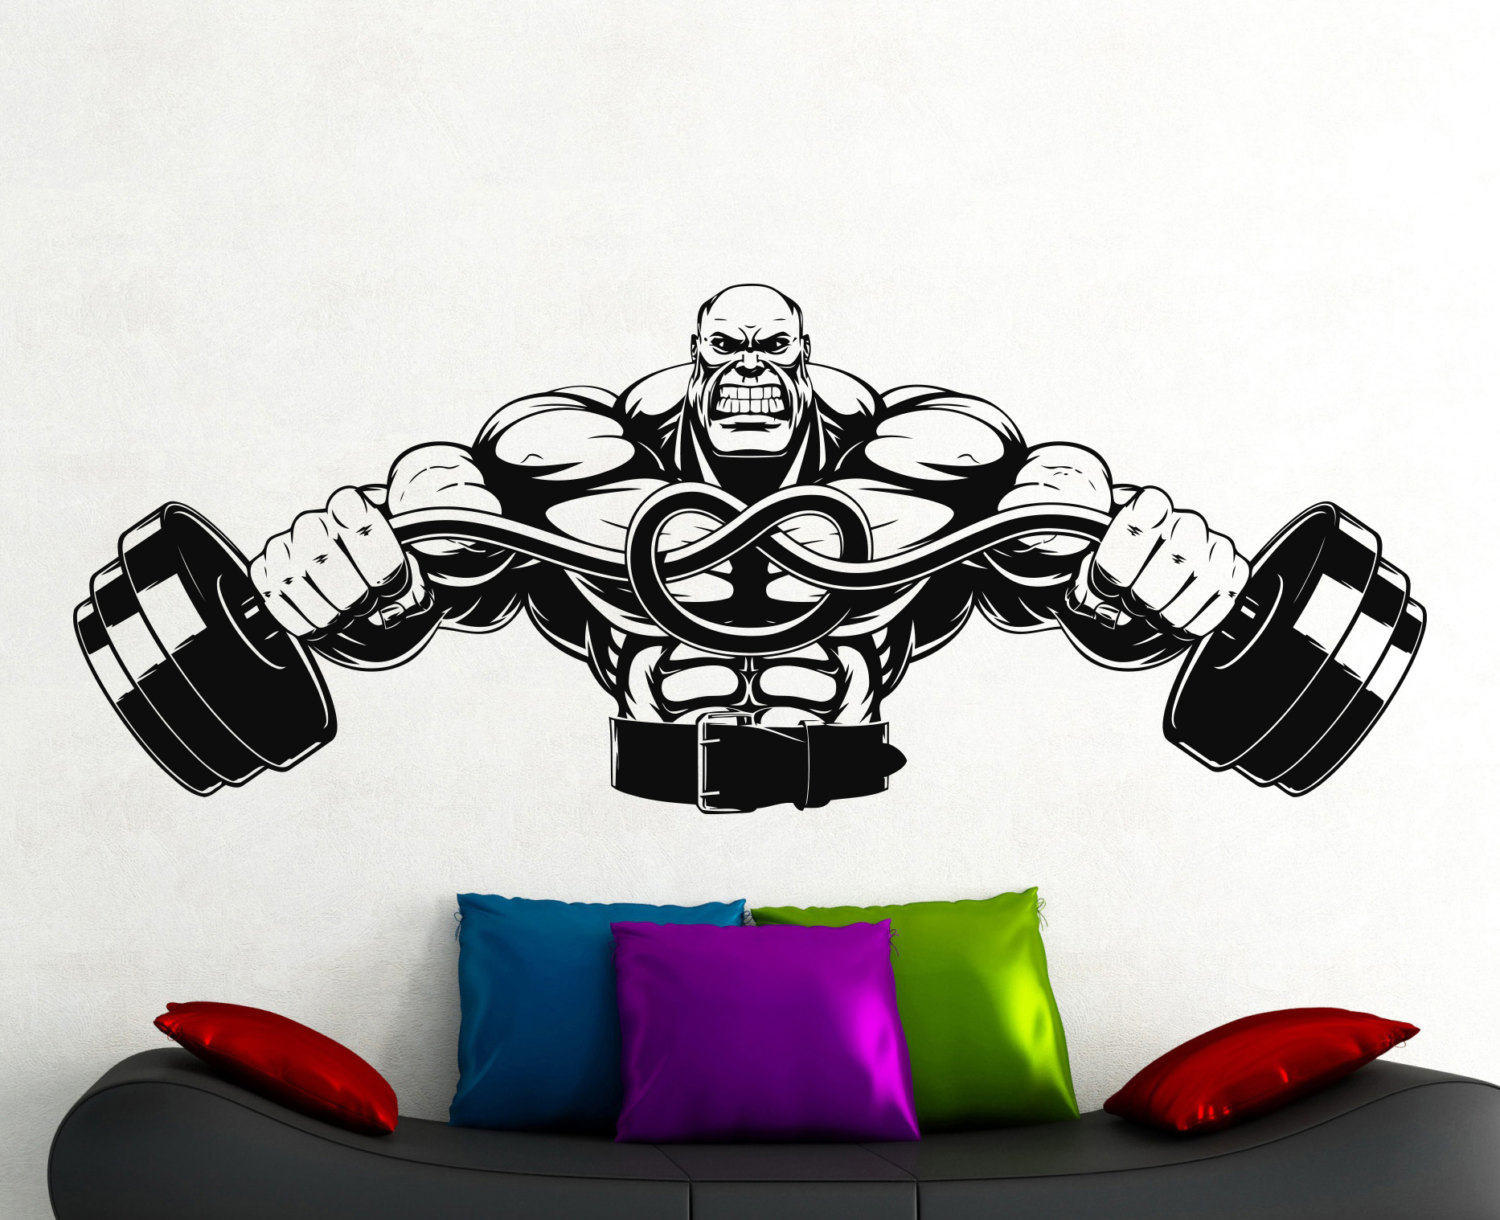 Sticker gym wall - Gym Wall Decal Fitness Stickers Sports Room Wall Decor Home Interior Wall Graphics Decor Removable Sticker